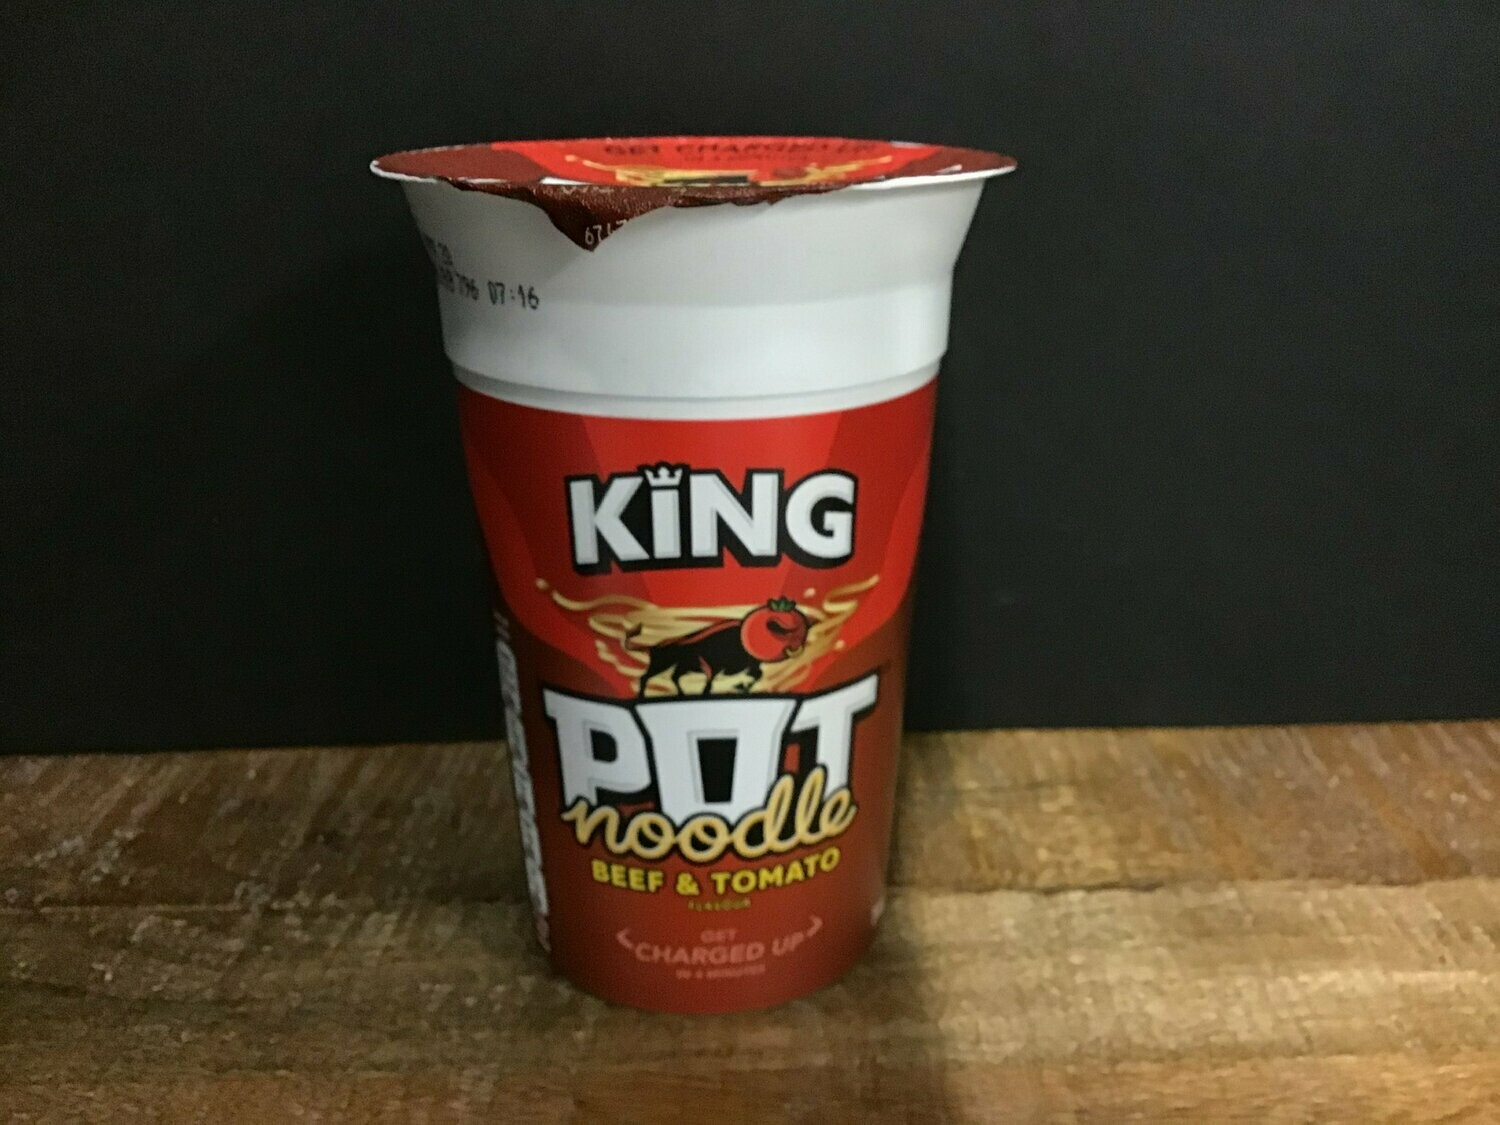 King Pot Noodle Beef & Tomato 114g